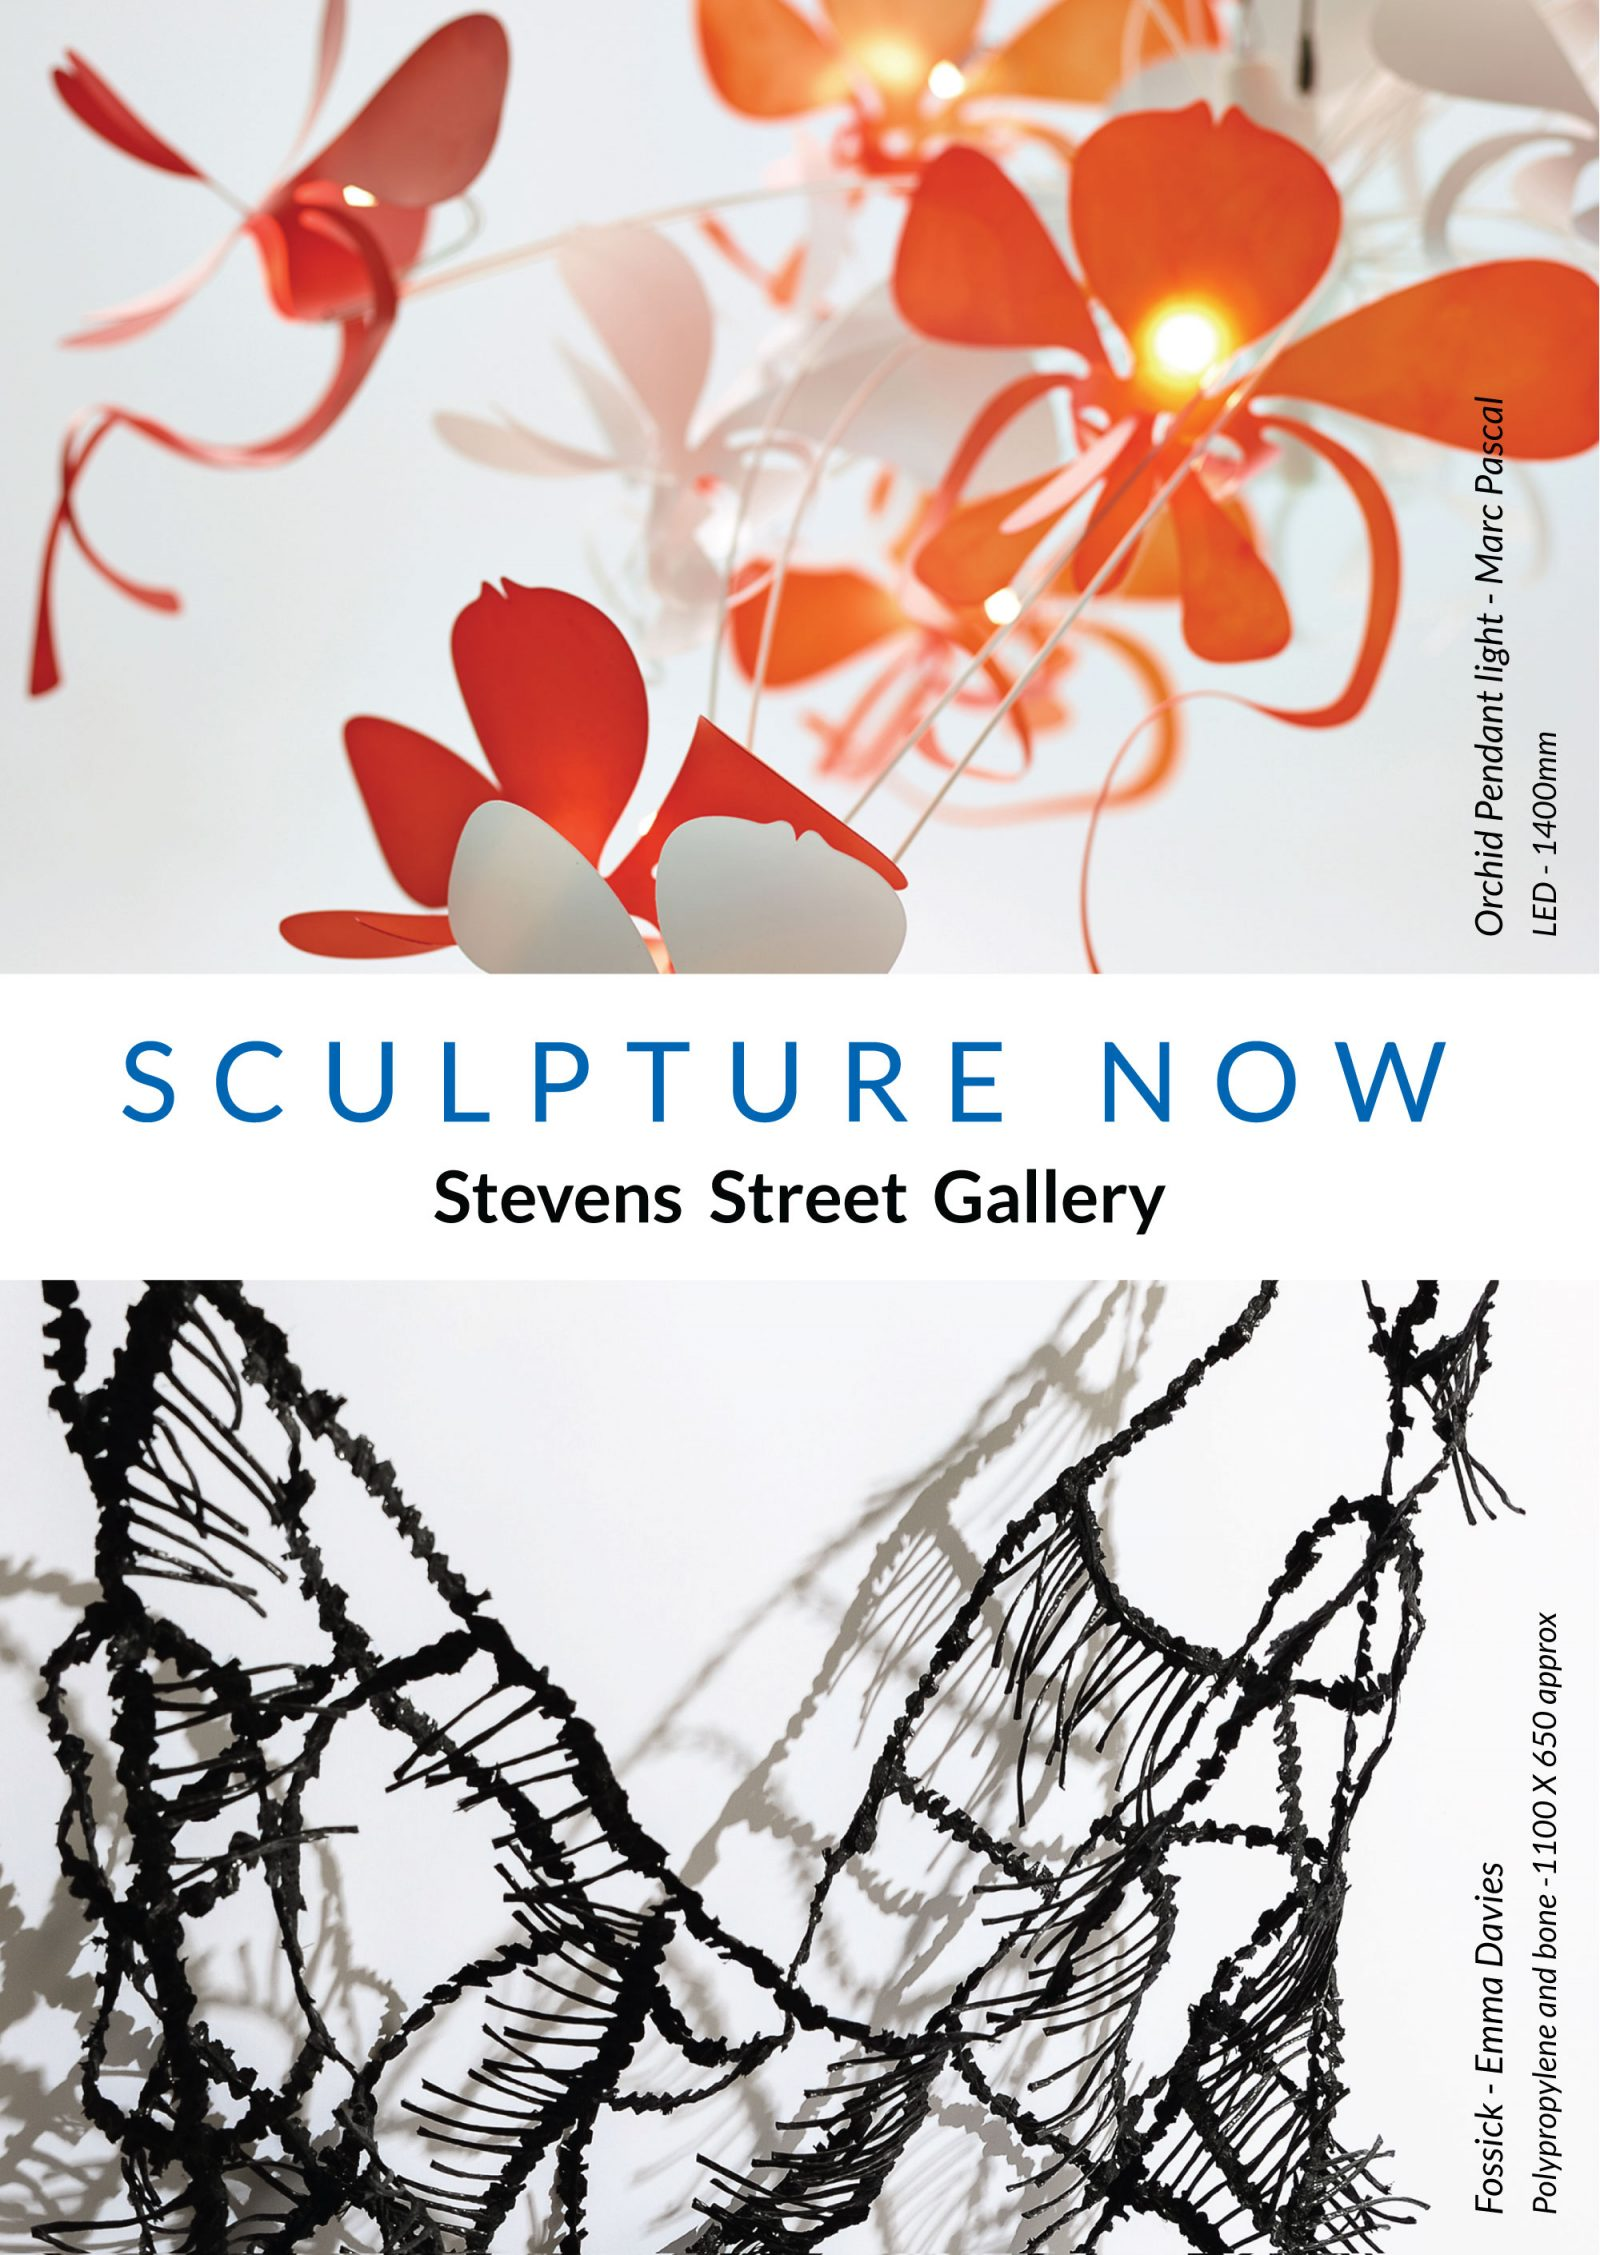 Sculpture Now exhibition invite.